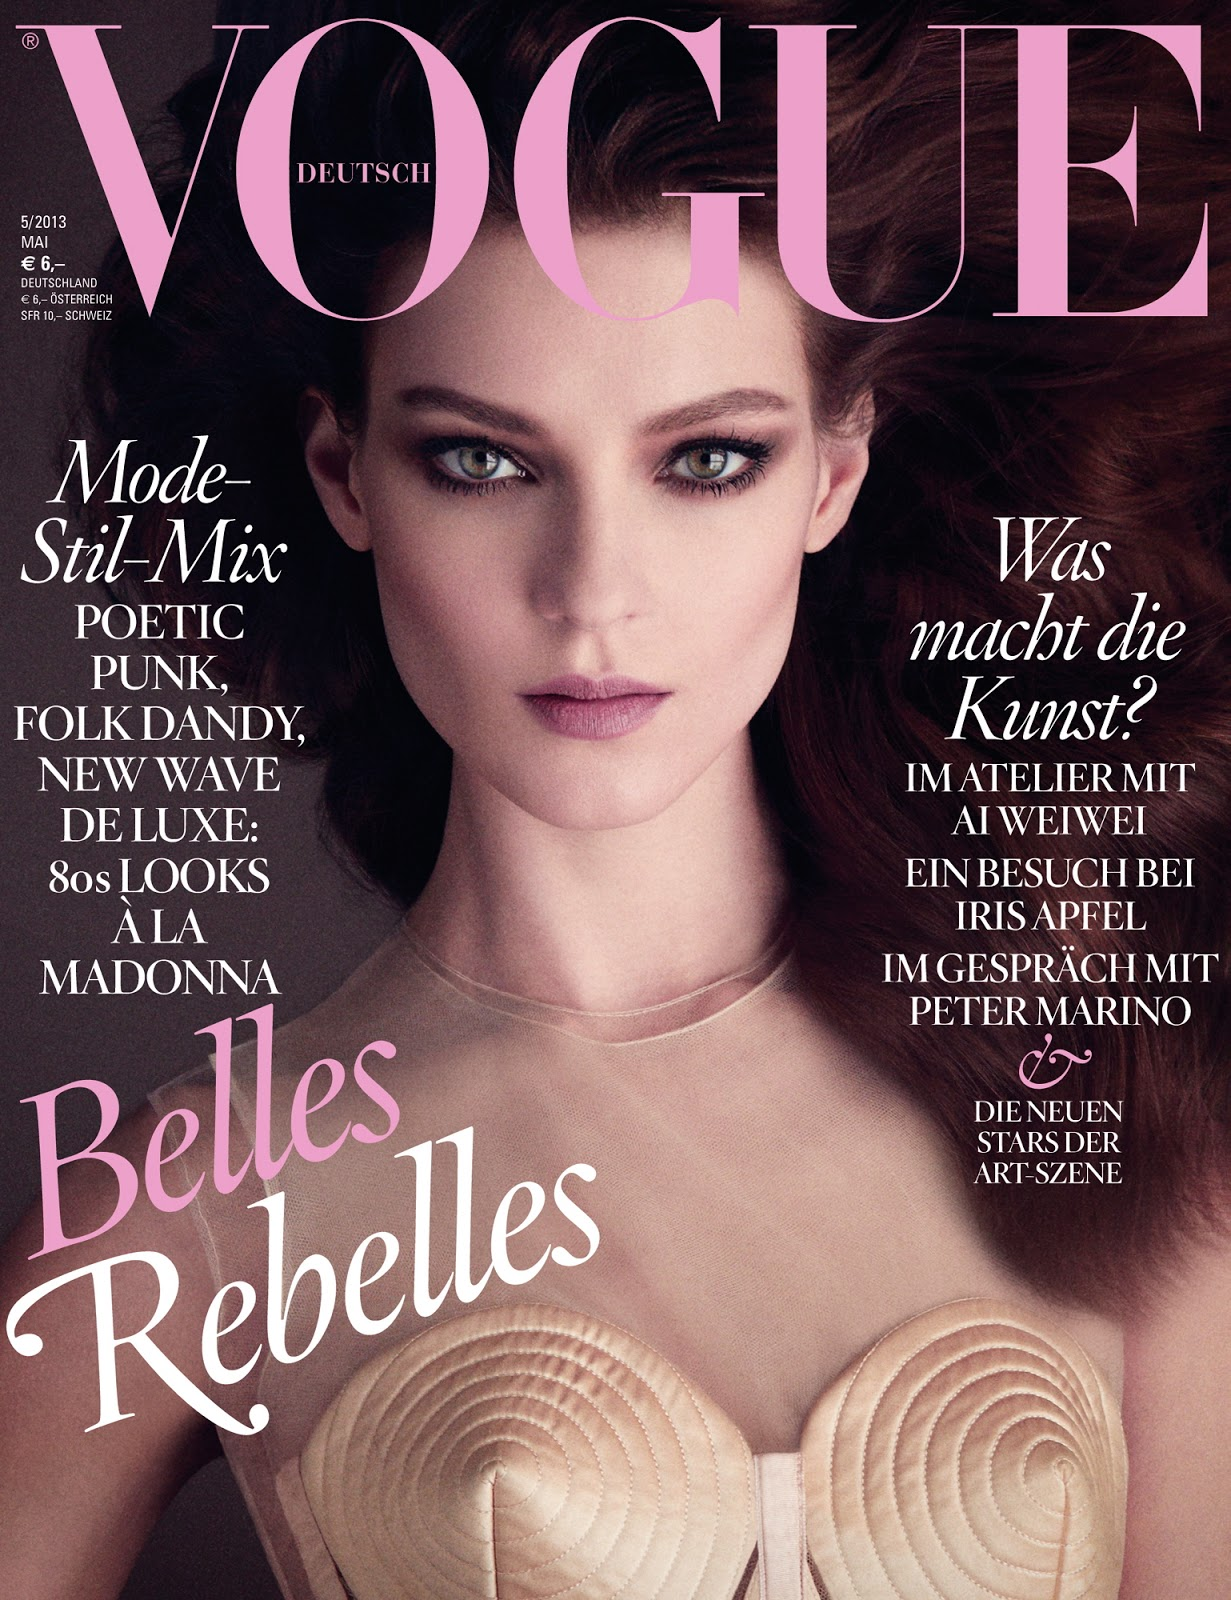 covers of vogue germany with kati nescher 958 2013 magazines the fmd. Black Bedroom Furniture Sets. Home Design Ideas